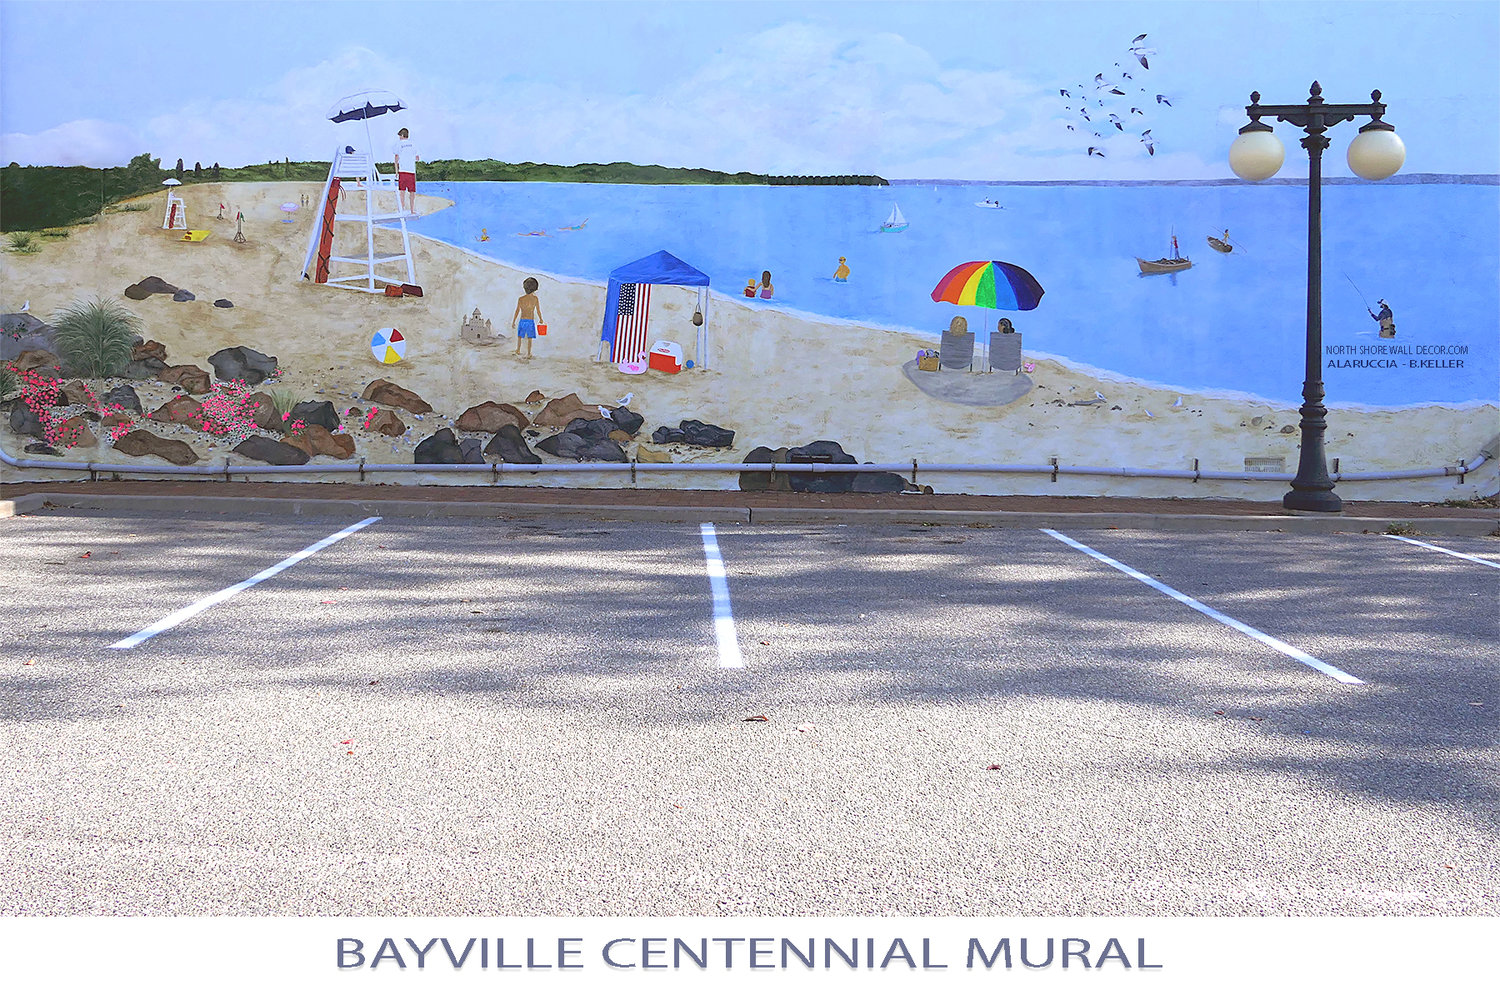 The Bayville Centennial Mural, created mostly by Anna Laruccia and Barbara Wendt, is in the village commons.